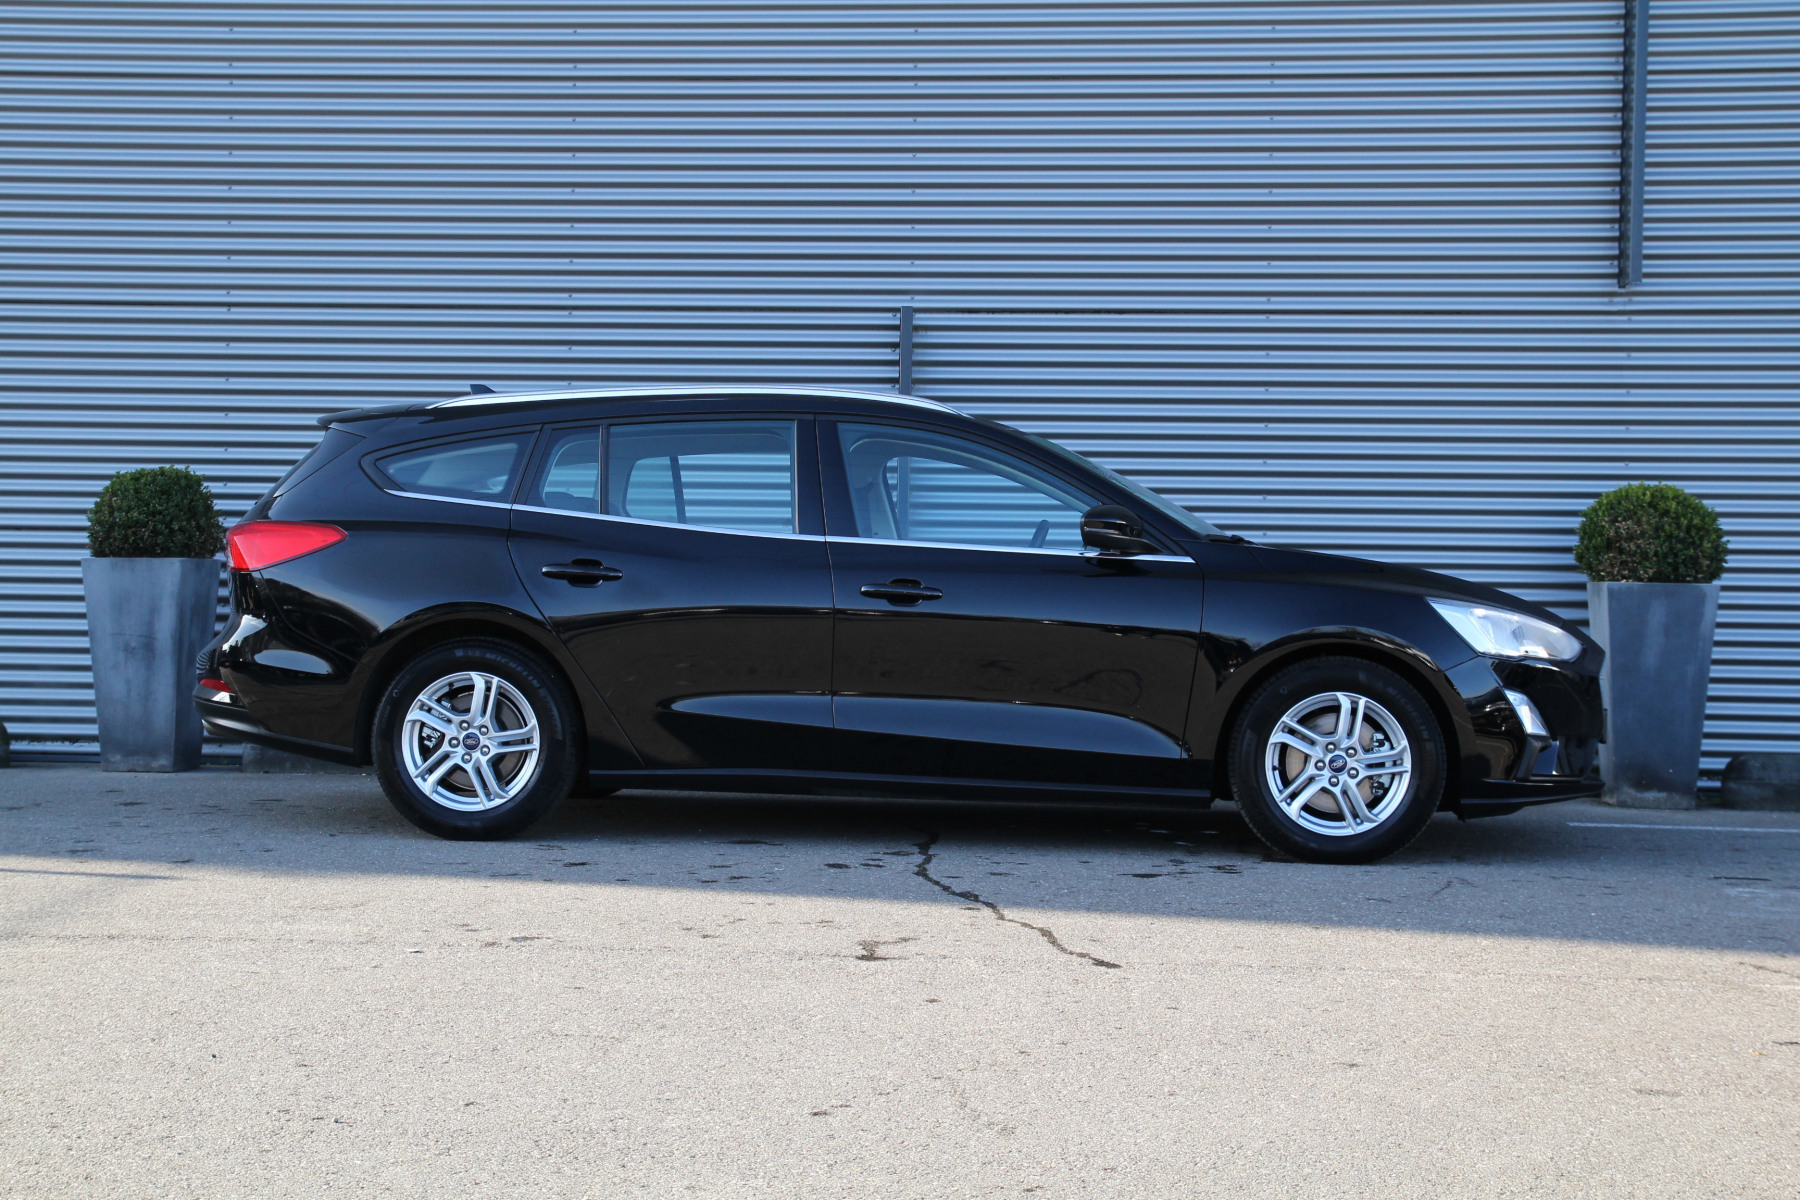 XK-408-N Ford Focus Wagon 1.0 ecoboost trend edition business - Leasespecial